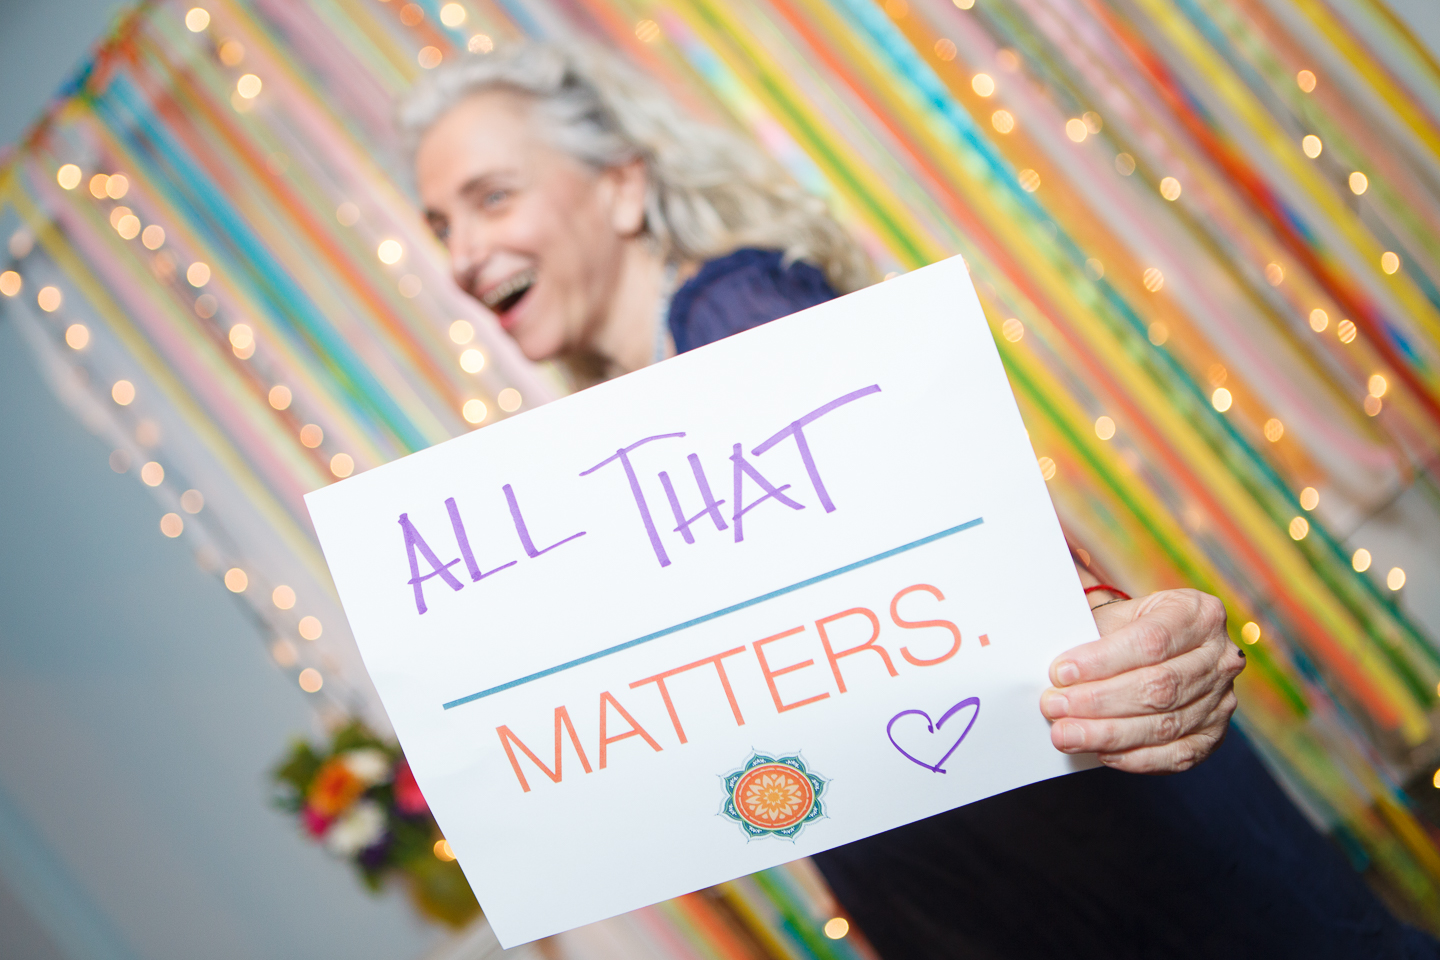 All That Matters Yoga Studio 20 Year Anniversary Party